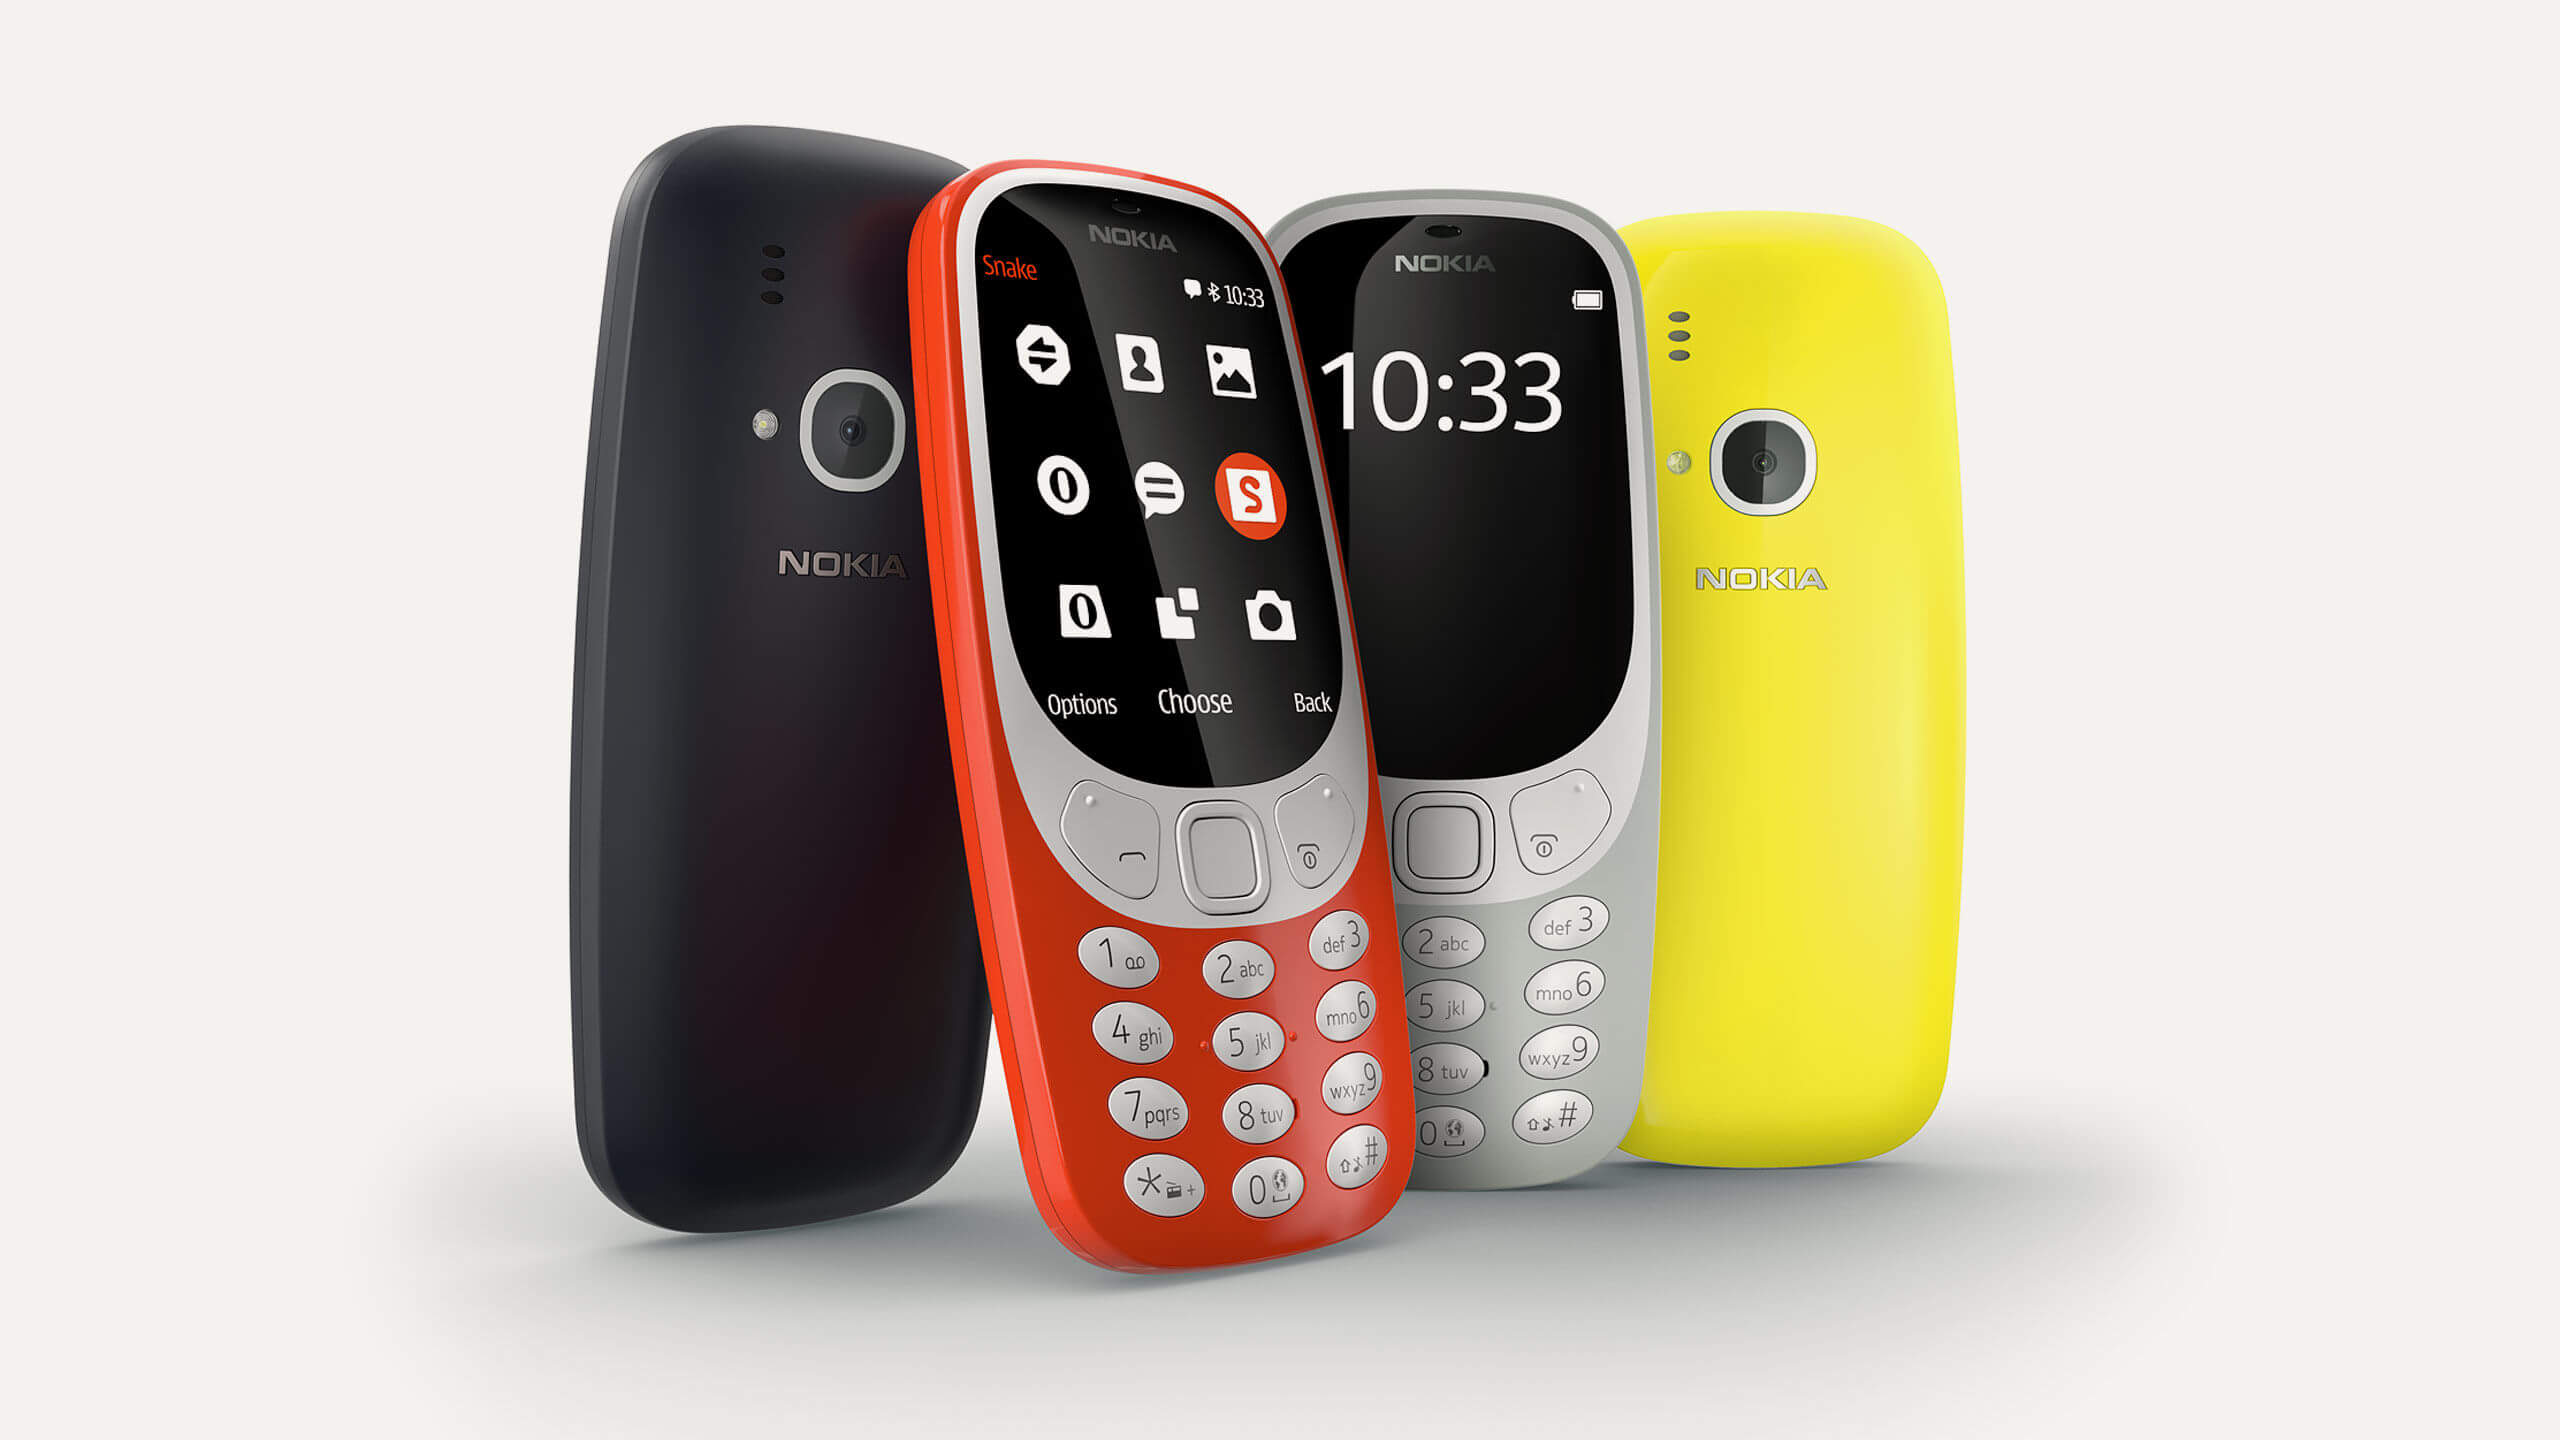 Iconic Nokia 3310 set to make a comeback at Rs 3310